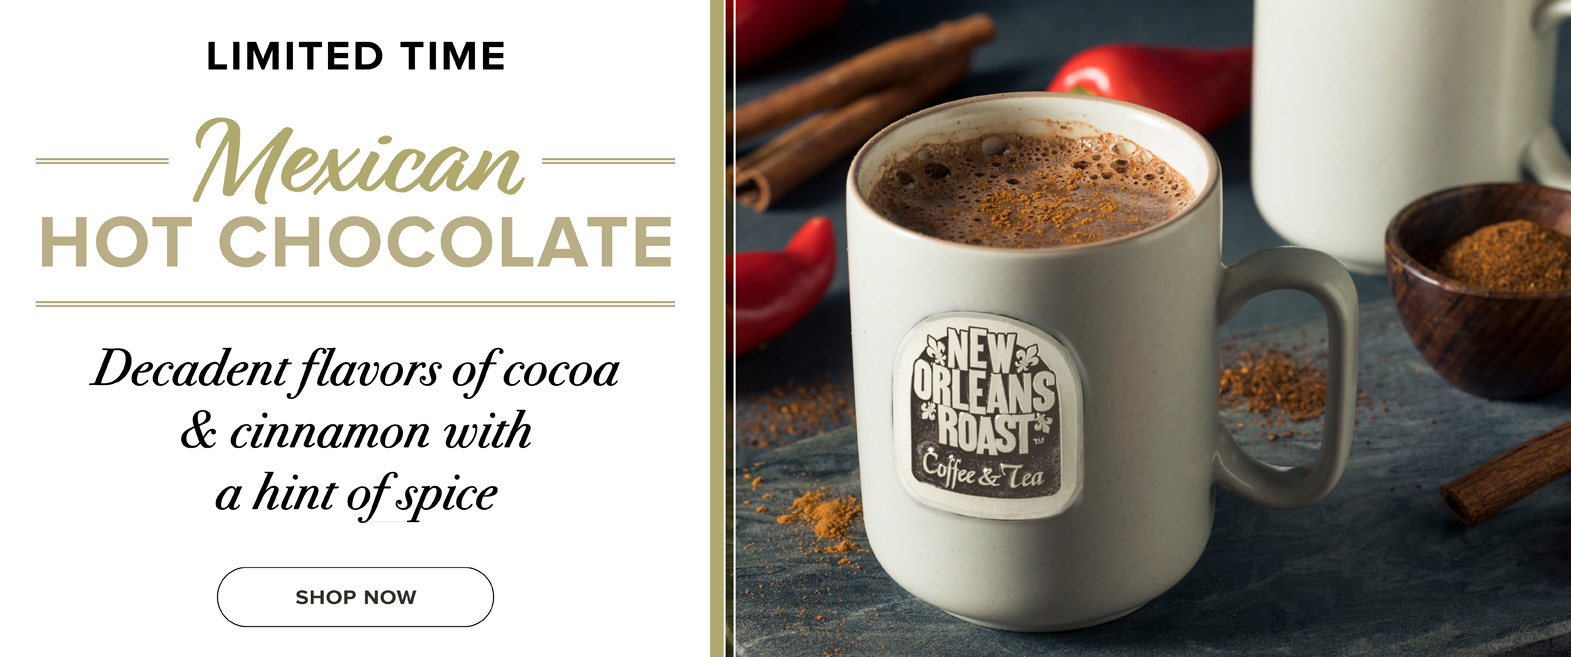 Limited Time. Mexican Hot Chocolate. Decadent flavors of cocoa and cinnamon with a hint of spice. Click to shop online